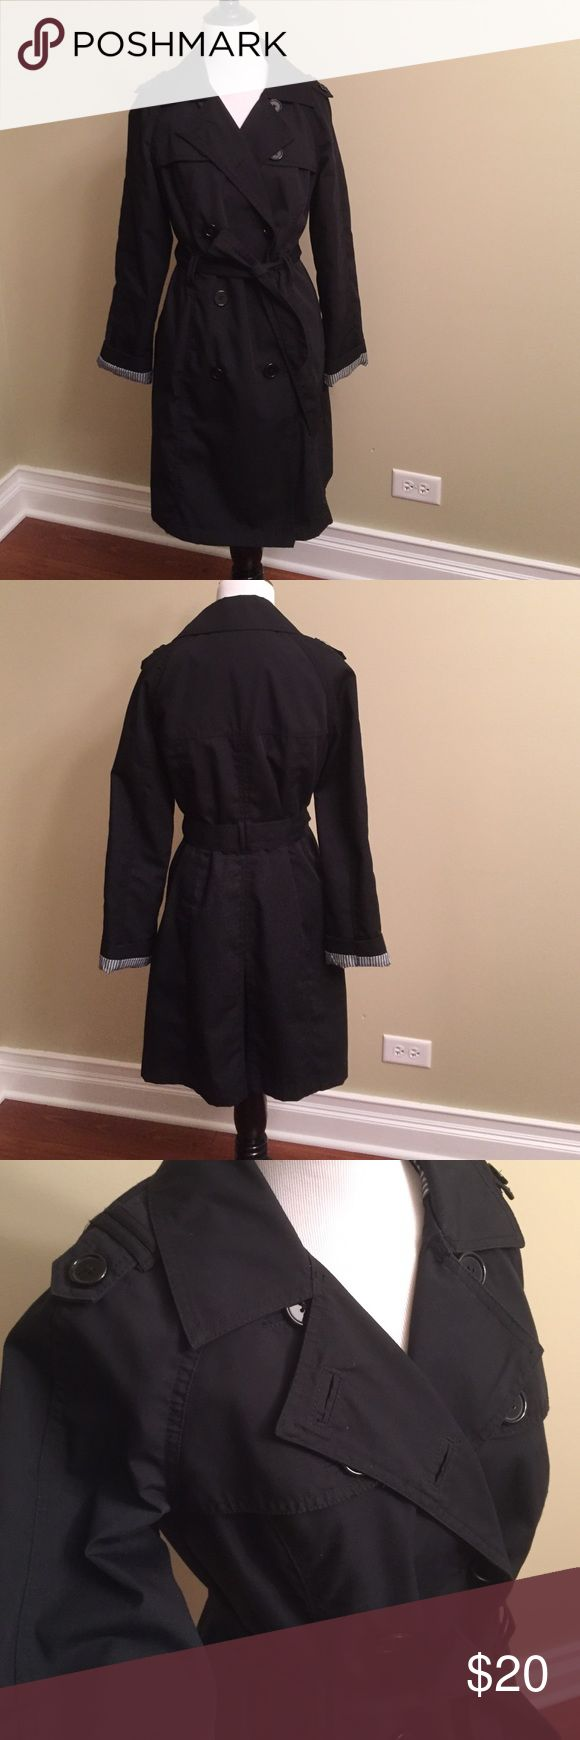 Black trench coat Always stylish black trench by Merona.  Great condition. This is lightweight and super cute!  Size small Jackets & Coats Trench Coats